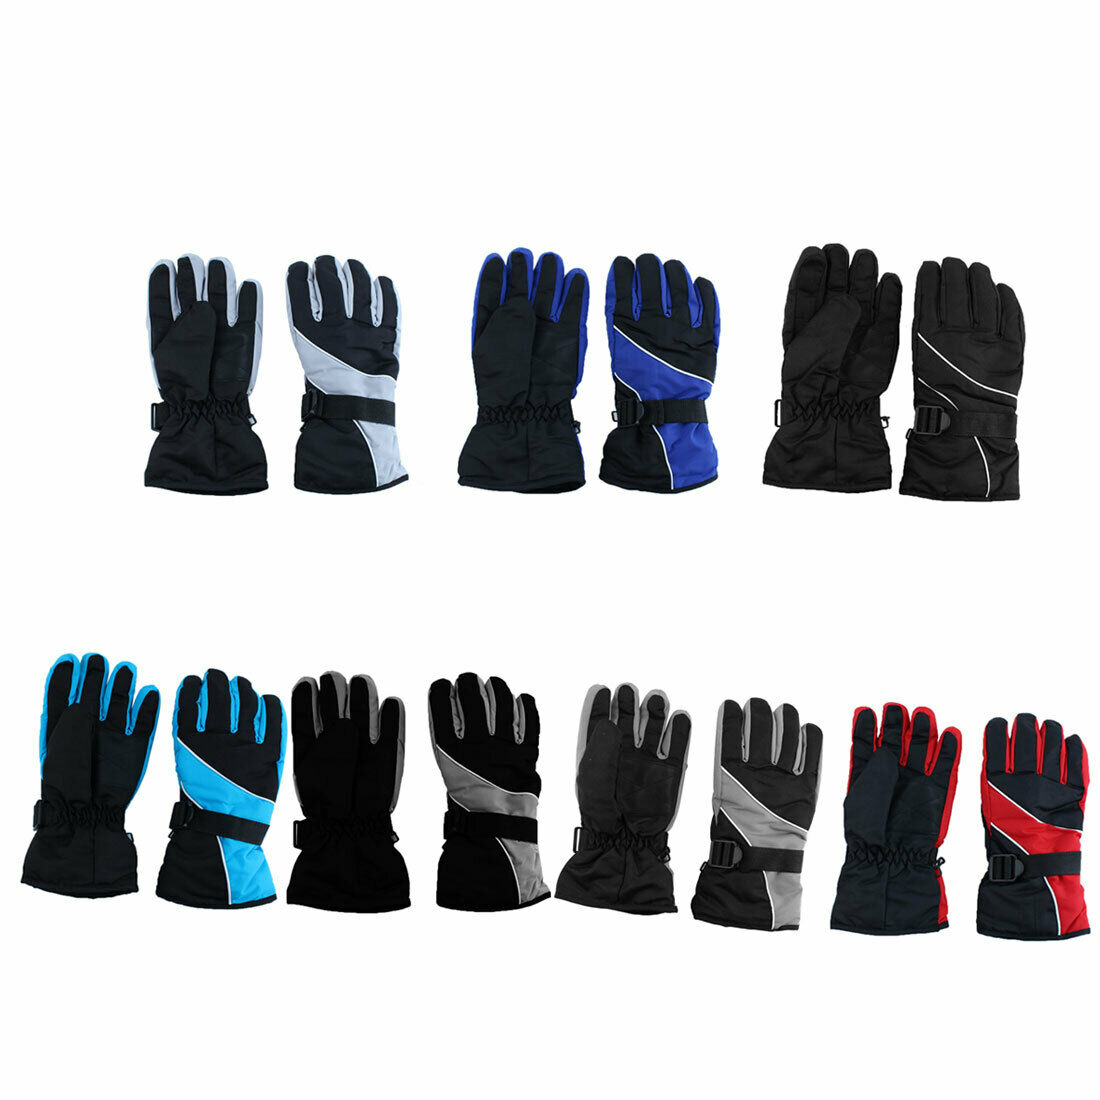 Motorcycle Climbing Winter Snowmobile Snowboard Ski Gloves Athletic Mittens Pair